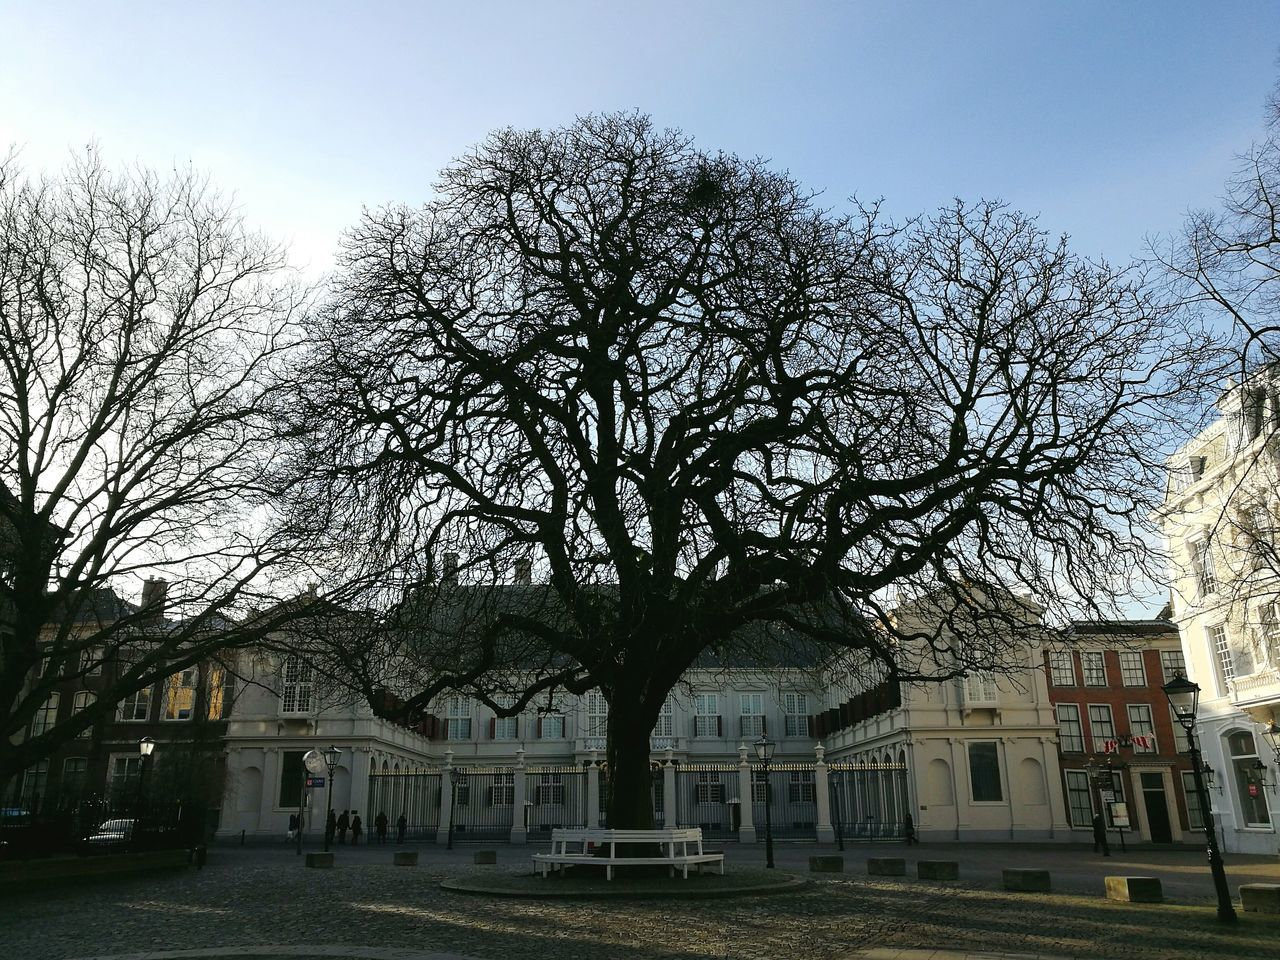 architecture, building exterior, built structure, bare tree, tree, house, outdoors, sky, no people, city, day, clear sky, branch